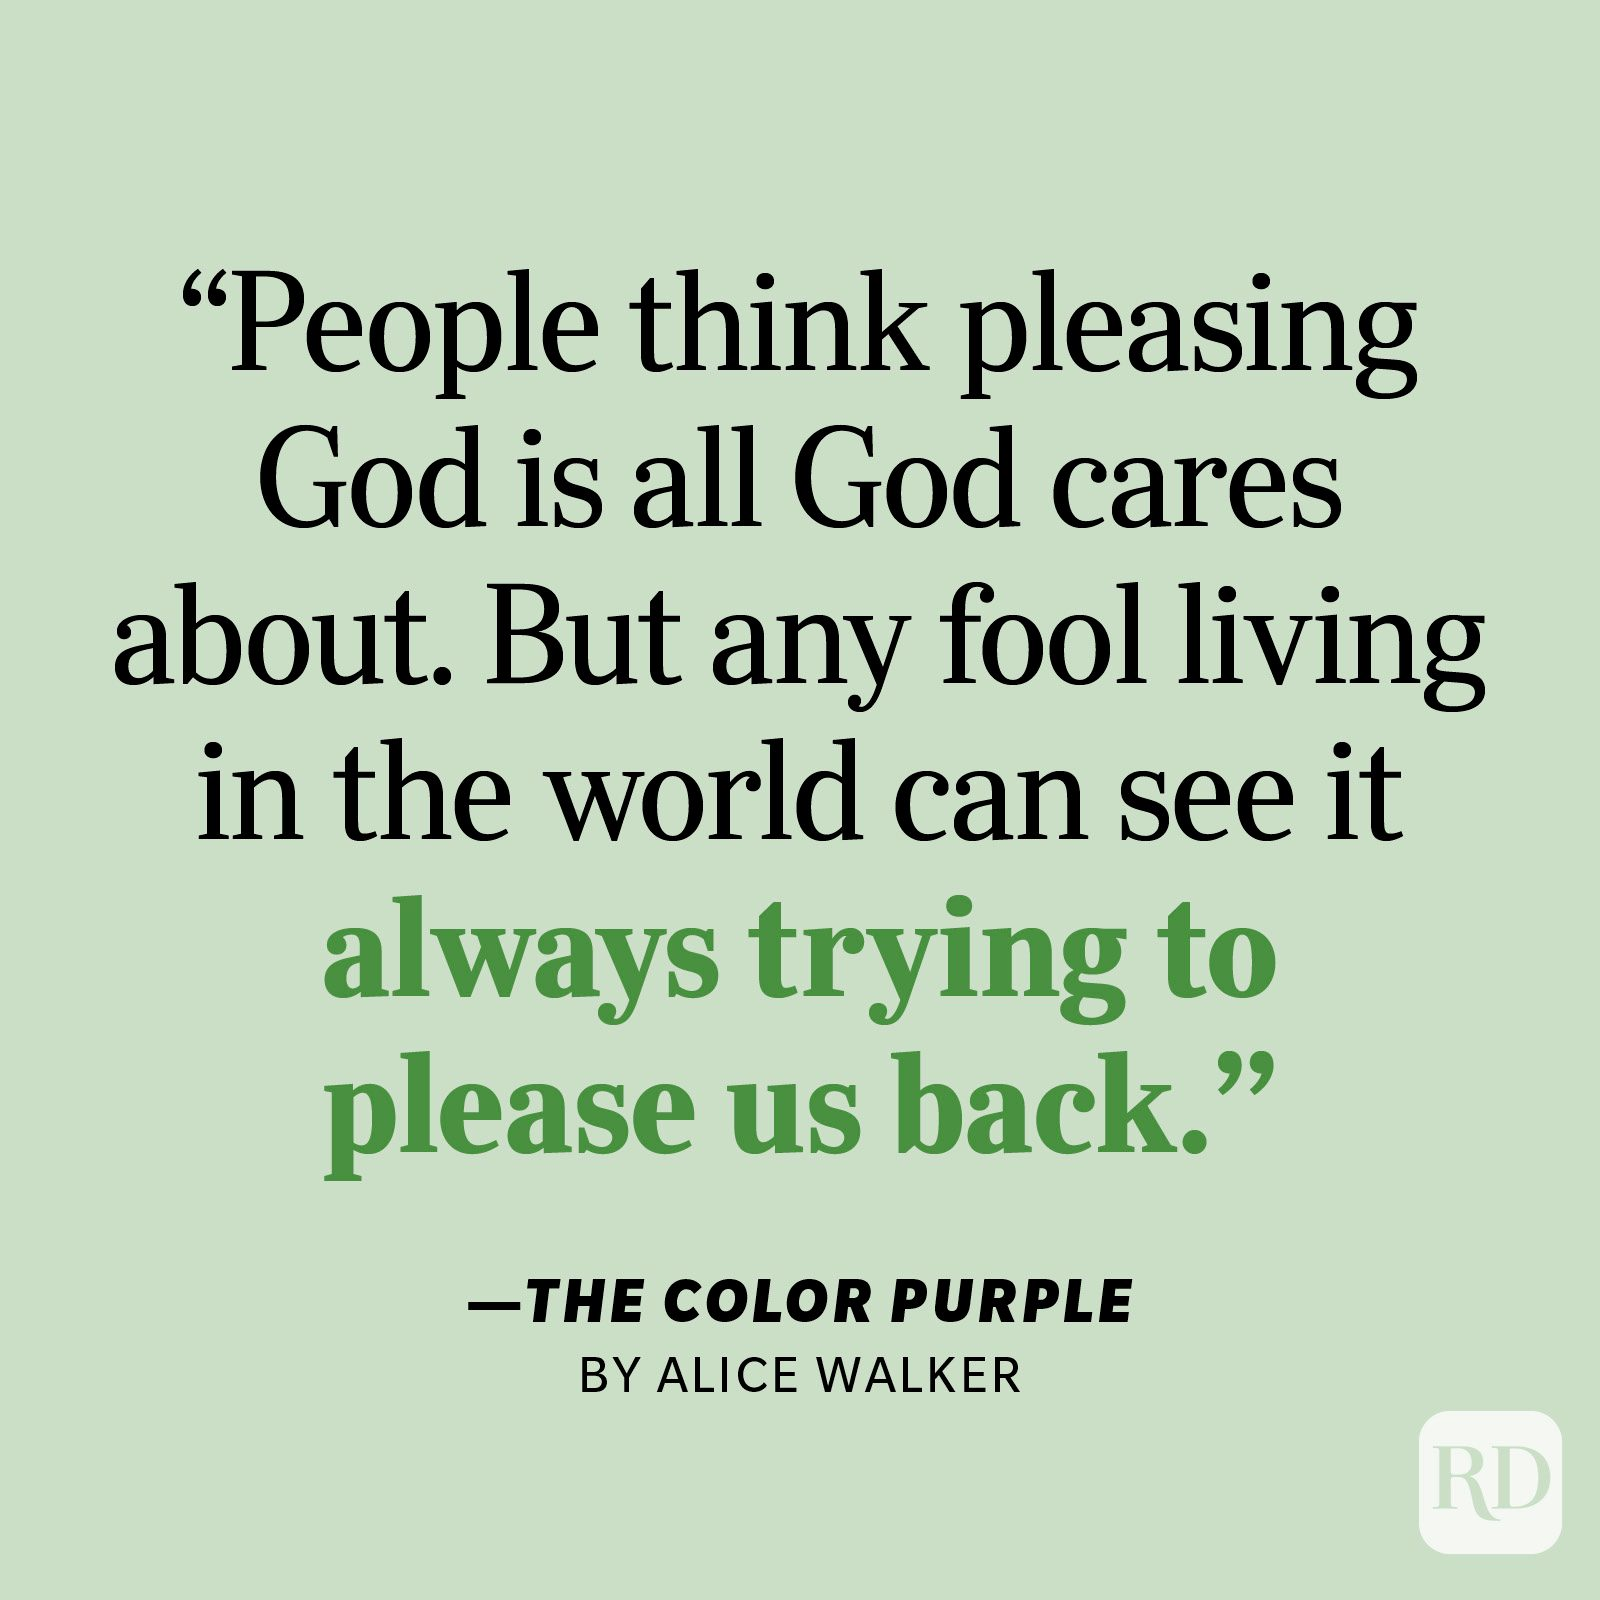 """The Color Purple by Alice Walker """"I think it pisses God off if you walk by the color purple in a field somewhere and don't notice it. People think pleasing God is all God cares about. But any fool living in the world can see it always trying to please us back."""""""